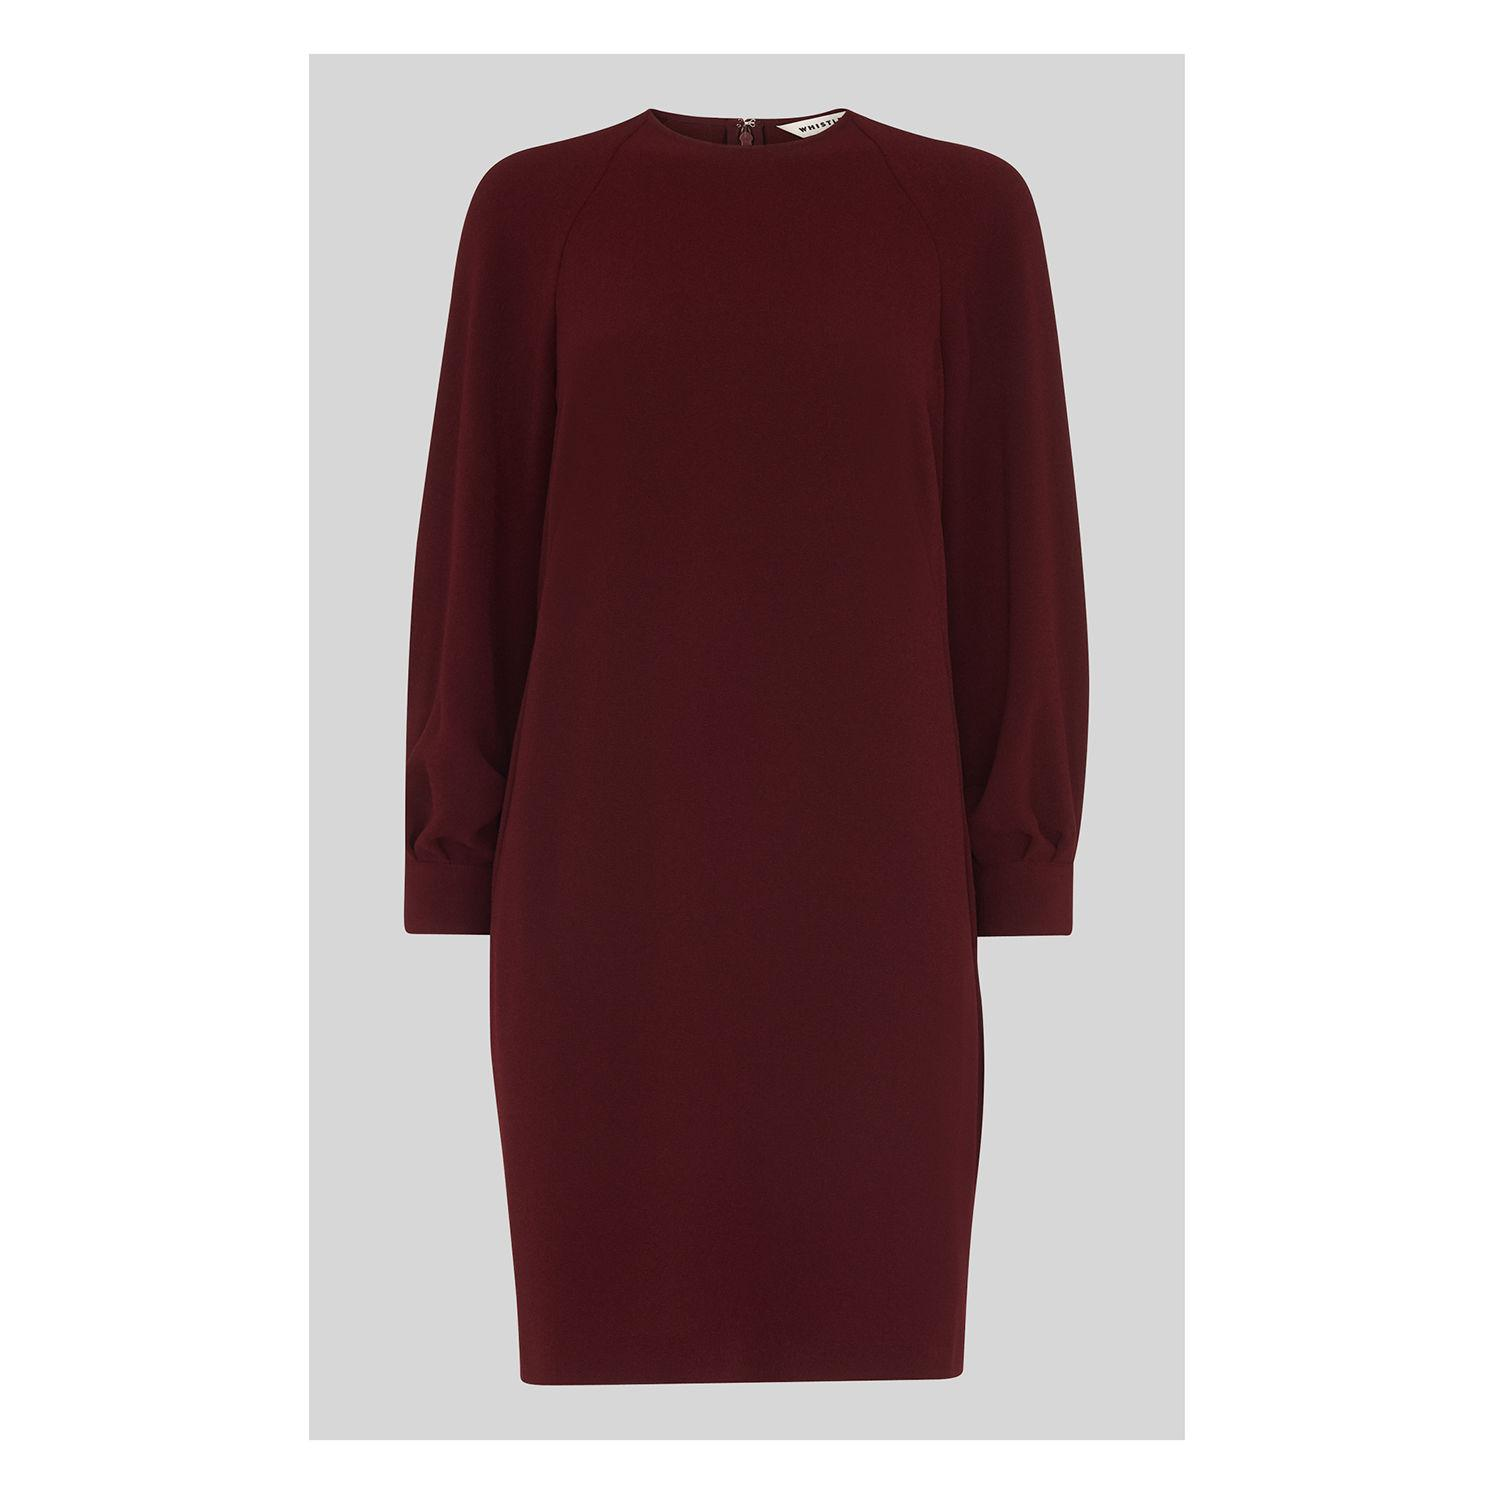 Lyst - Whistles Tihara Textured Dress in Red a139eda49